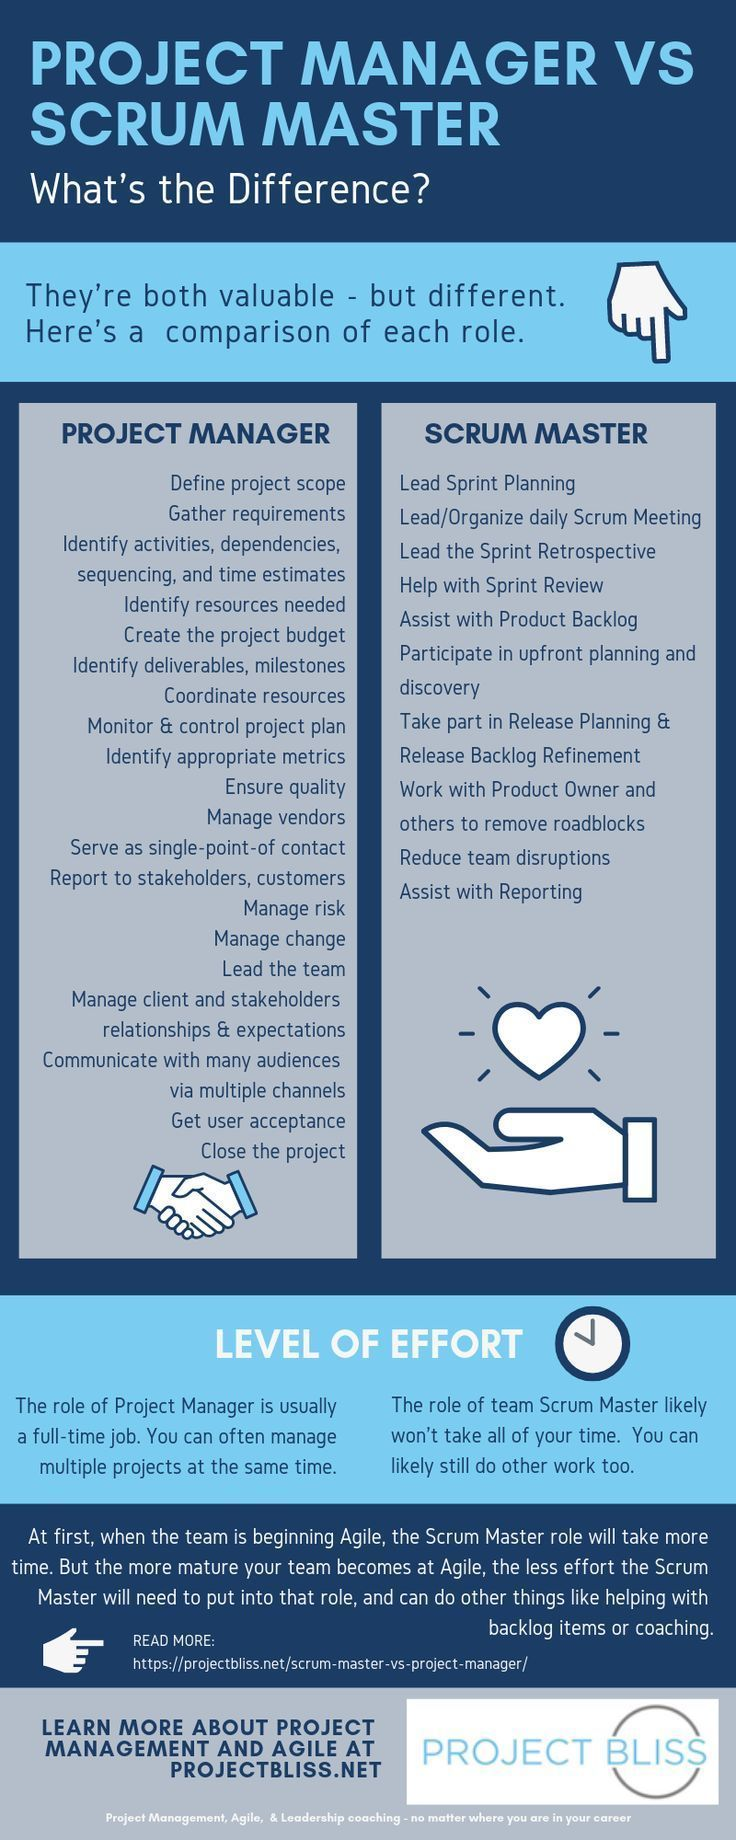 Scrum Master Vs Project Manager What S The Difference Project Bliss Agile Project Management Project Management Project Management Professional